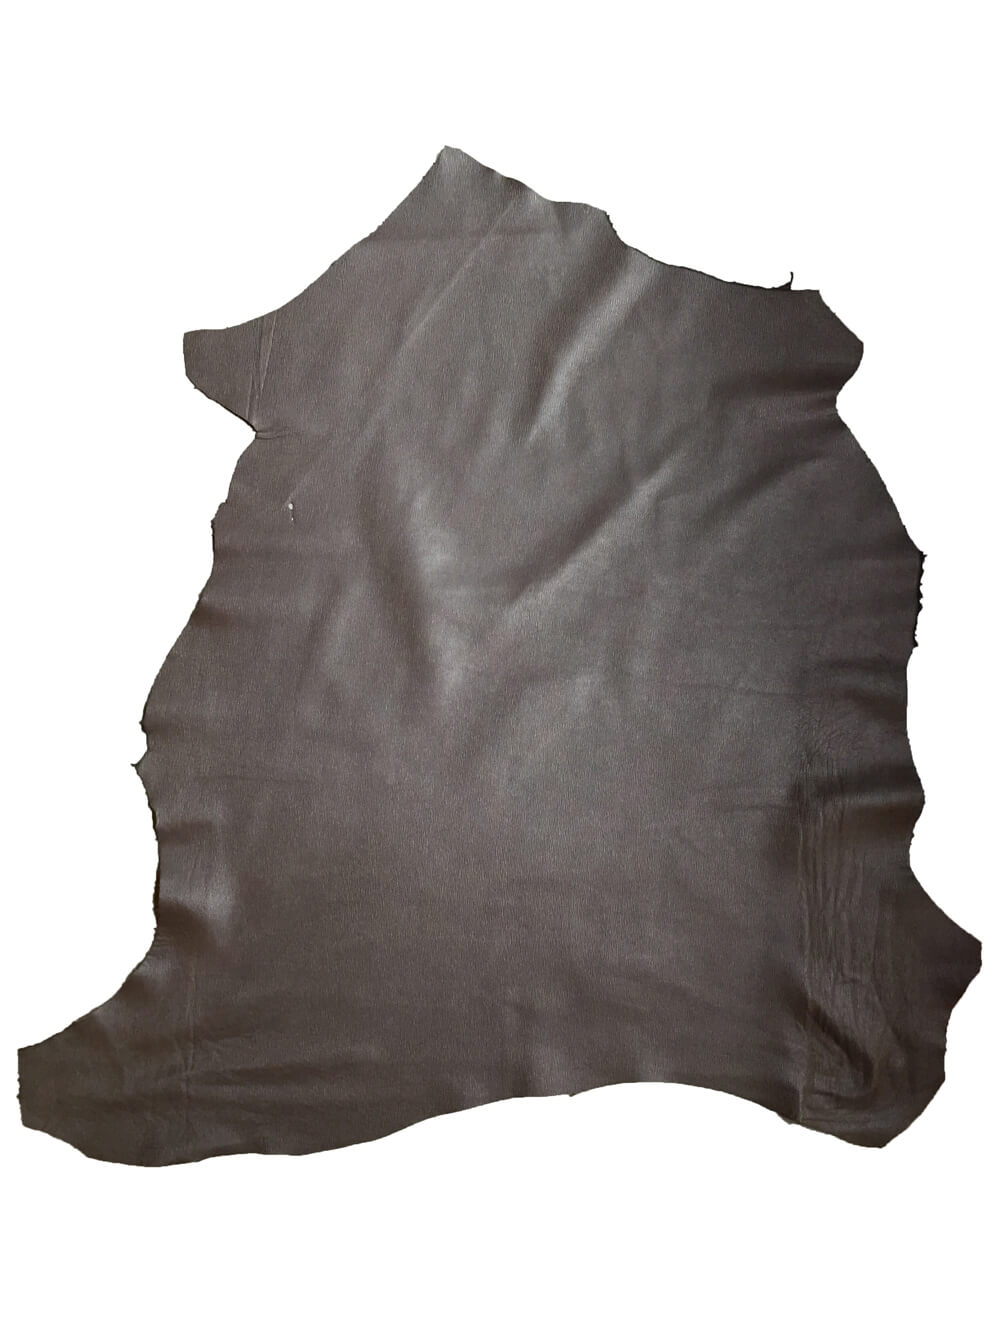 SALE Brown genuine lambskin leather in full leather hides with textured finish